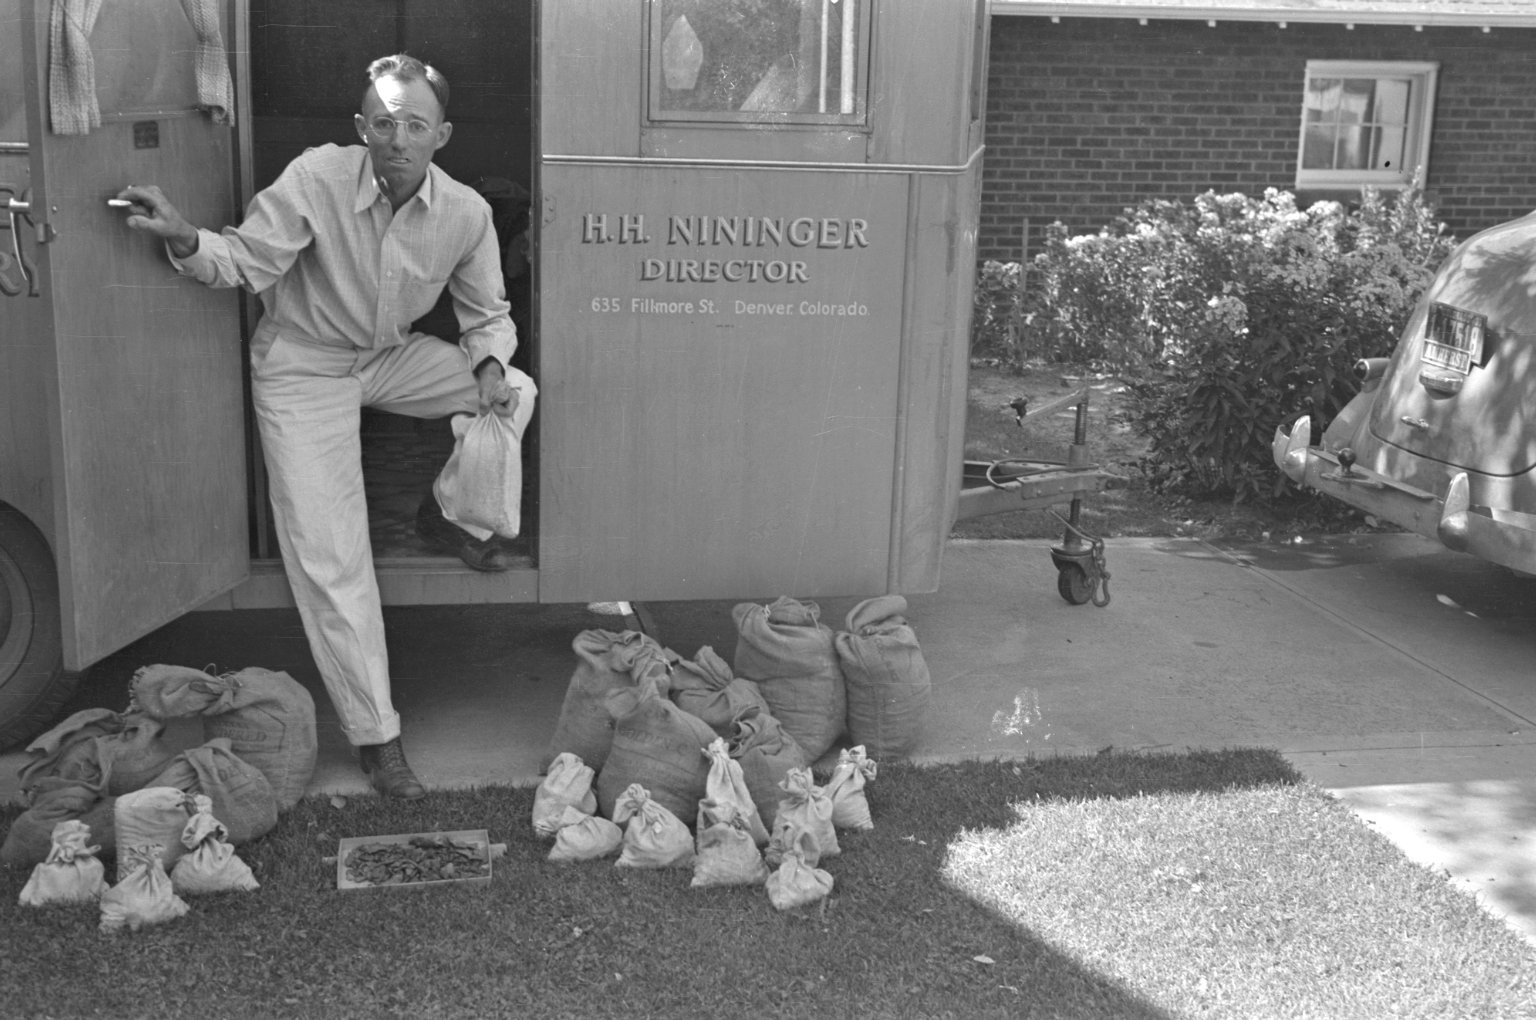 H.H. Nininger in American Meteorite Laboratory with specimen bags in what apears to be the driveway of his house